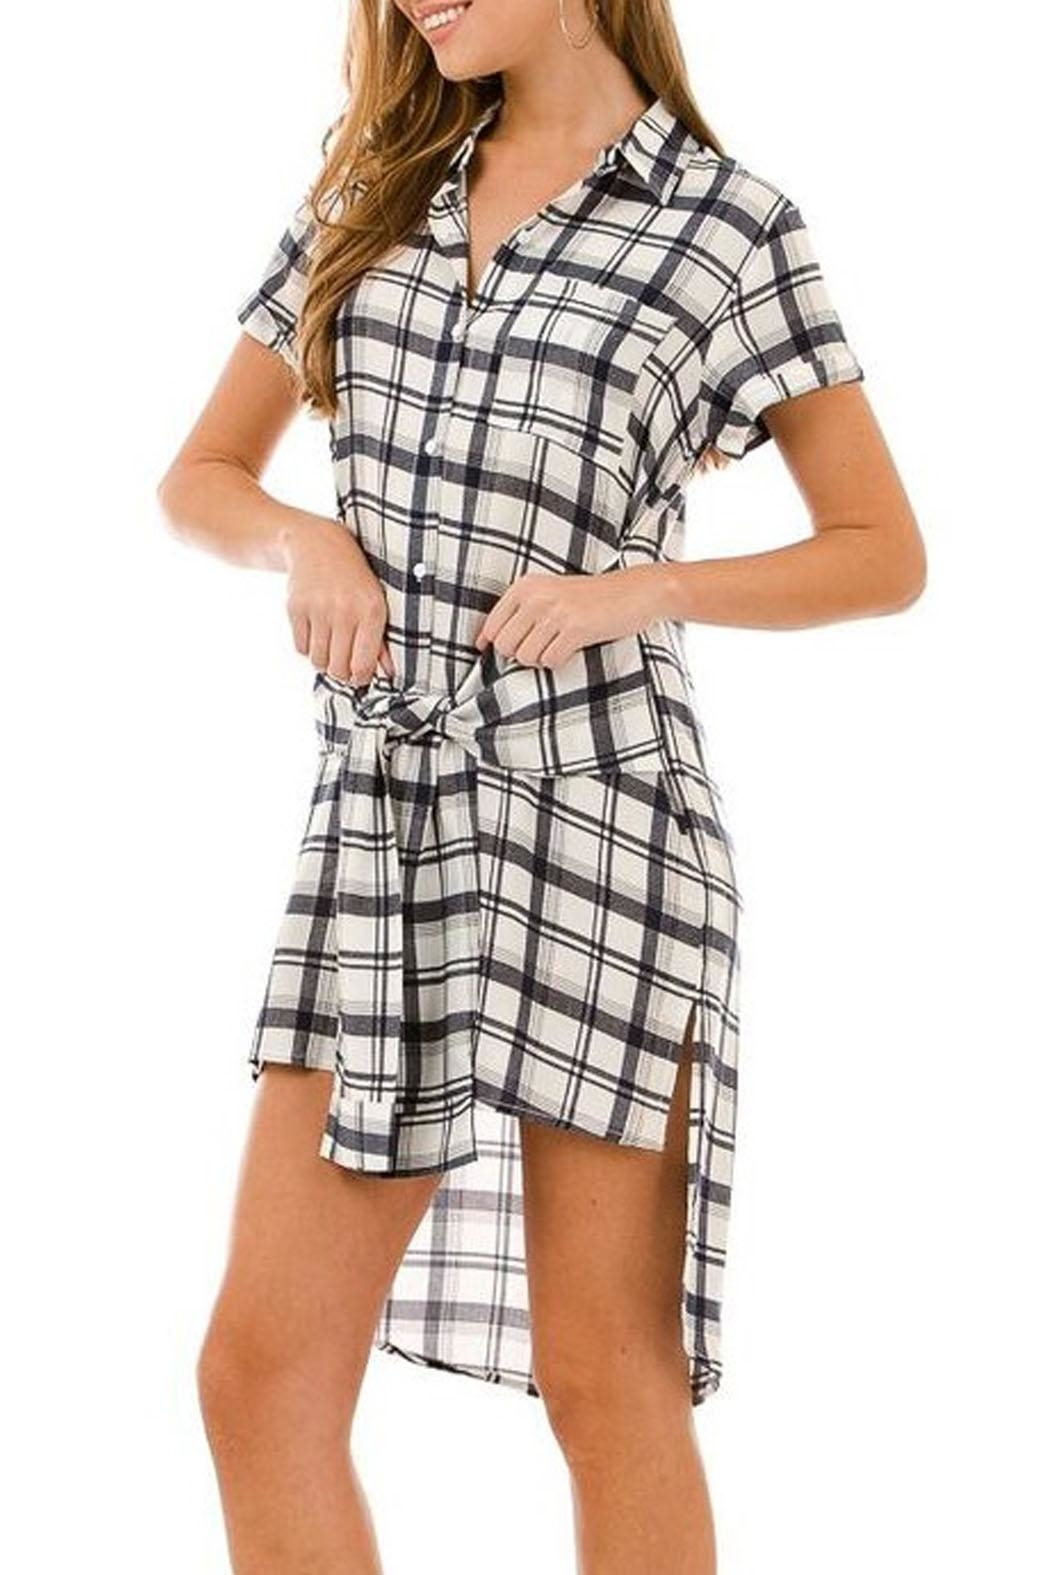 AKAIV Tie-Front Shirt Dress - Main Image